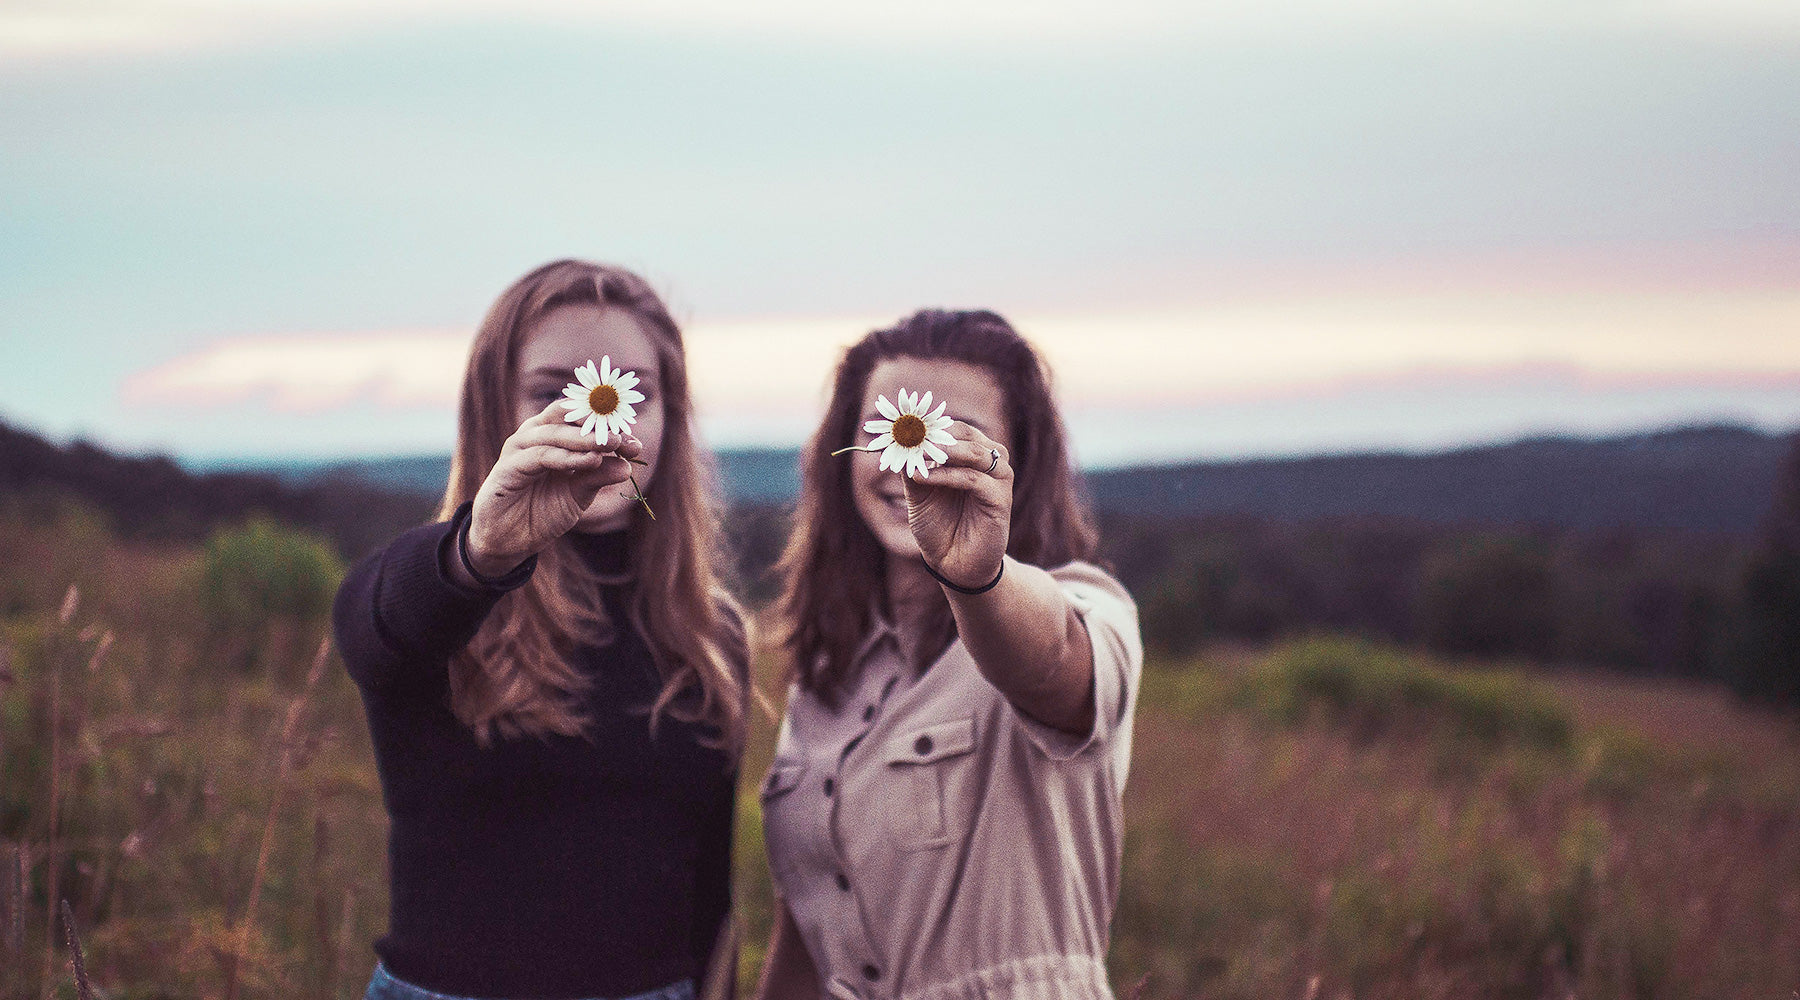 Two girls holding daisies in front of faces